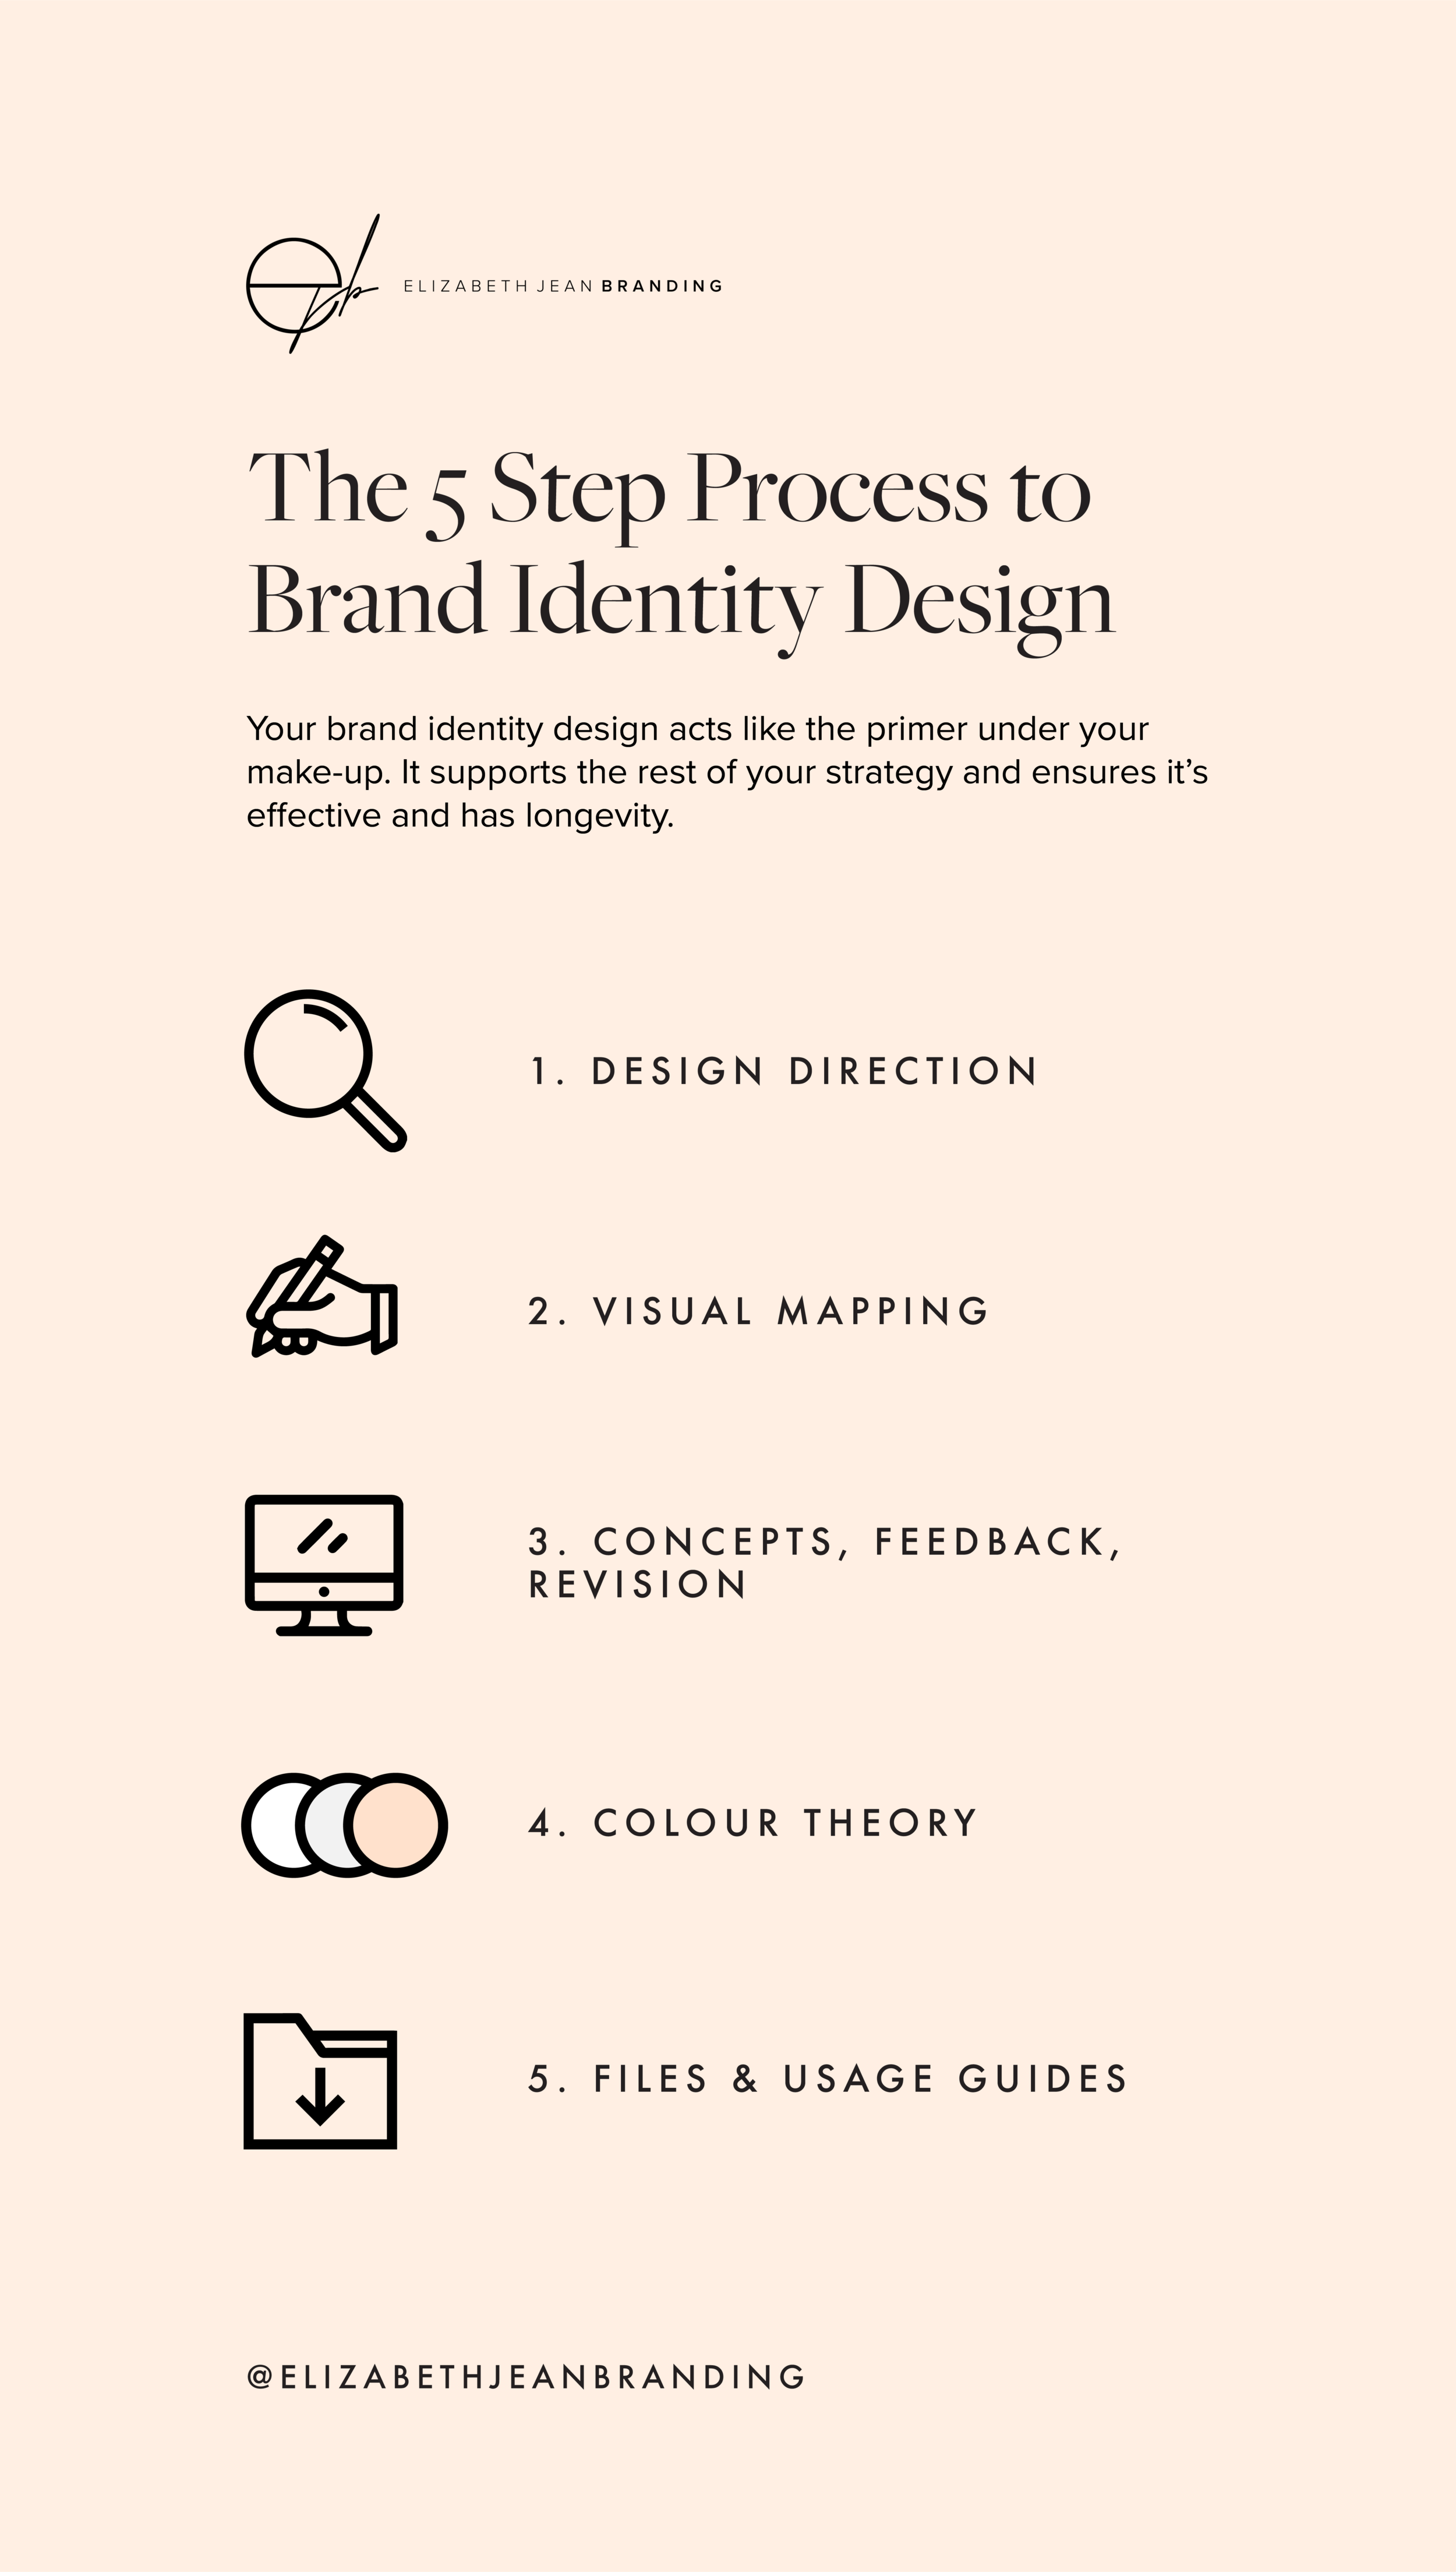 The five step process to branding design and identity.